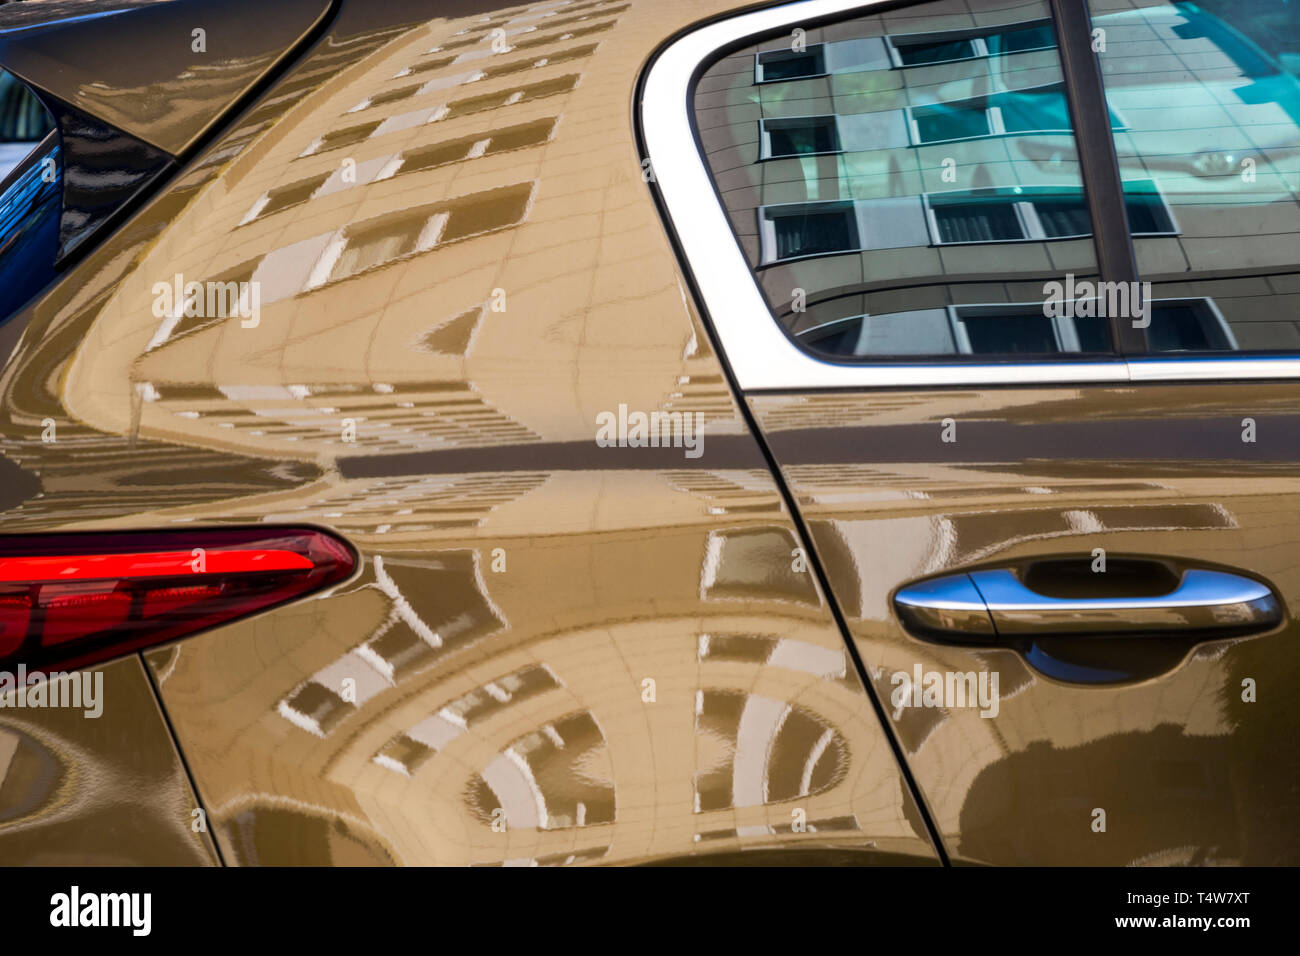 A high-rise apartment block reflected in a car window in Berlin, Germany. Stock Photo